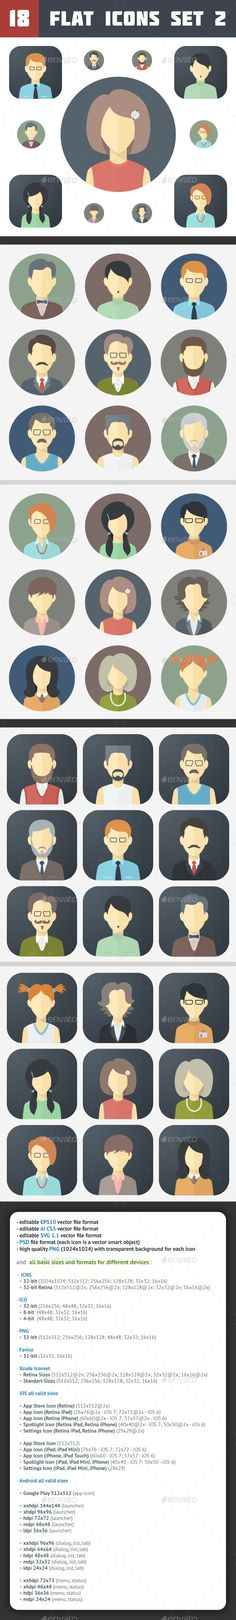 Minimalistic Flat Faces Icons Set 2 - People Characters